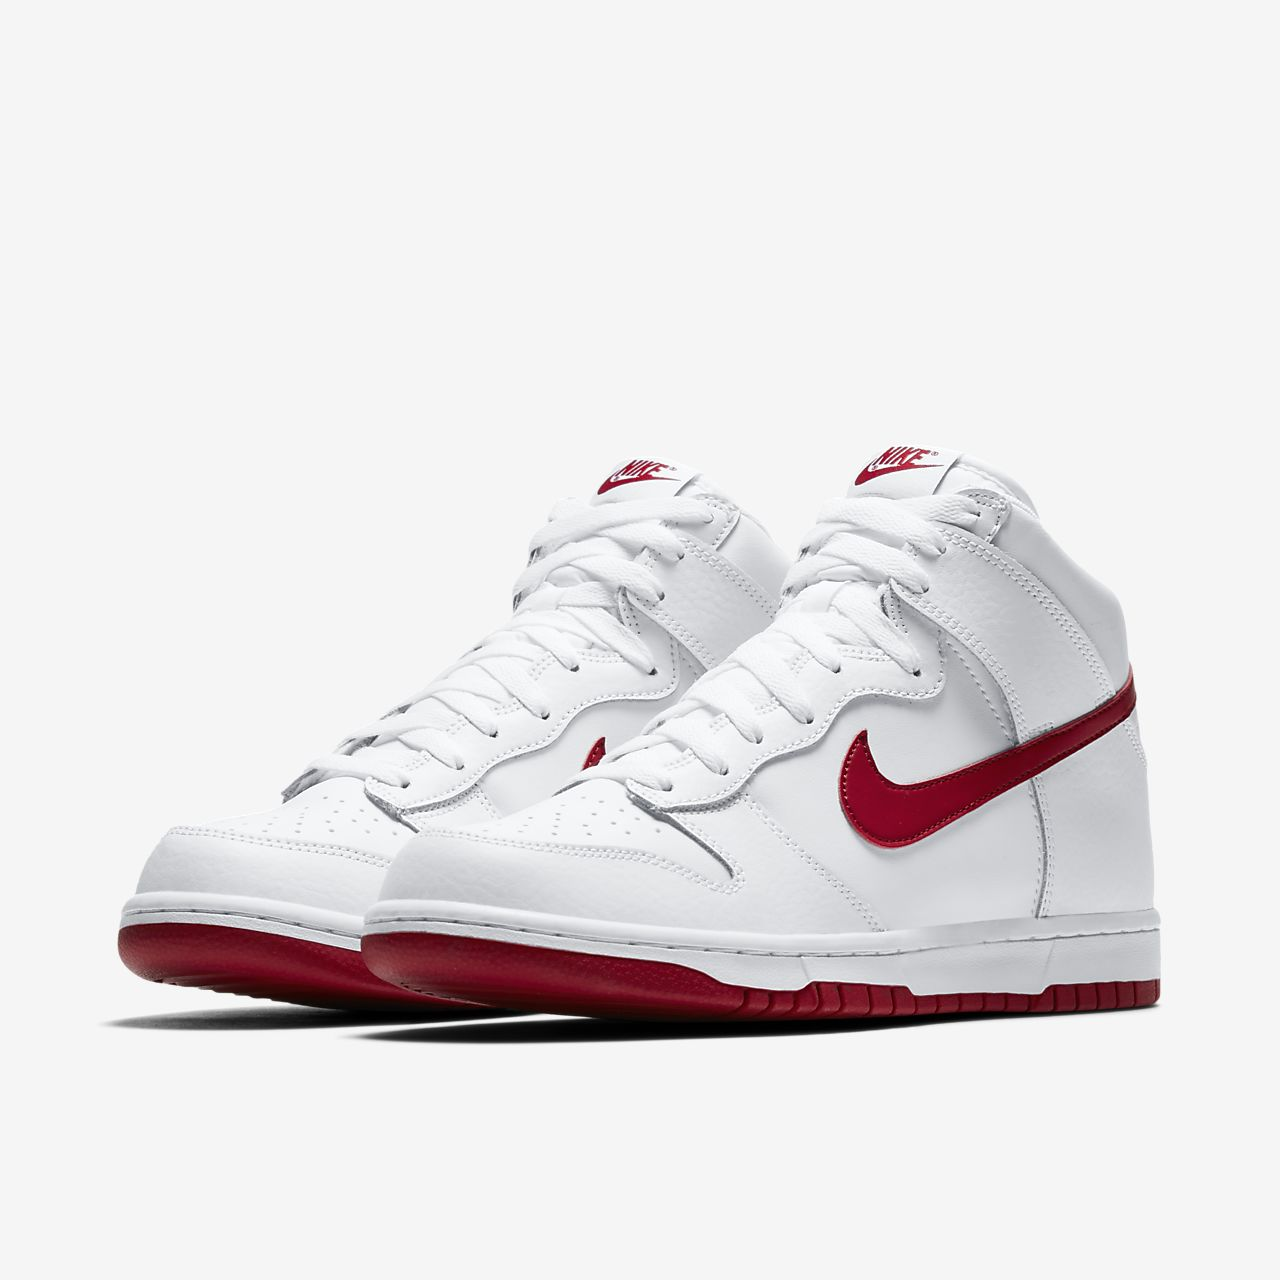 nike high dunks men > OFF64% Discounts